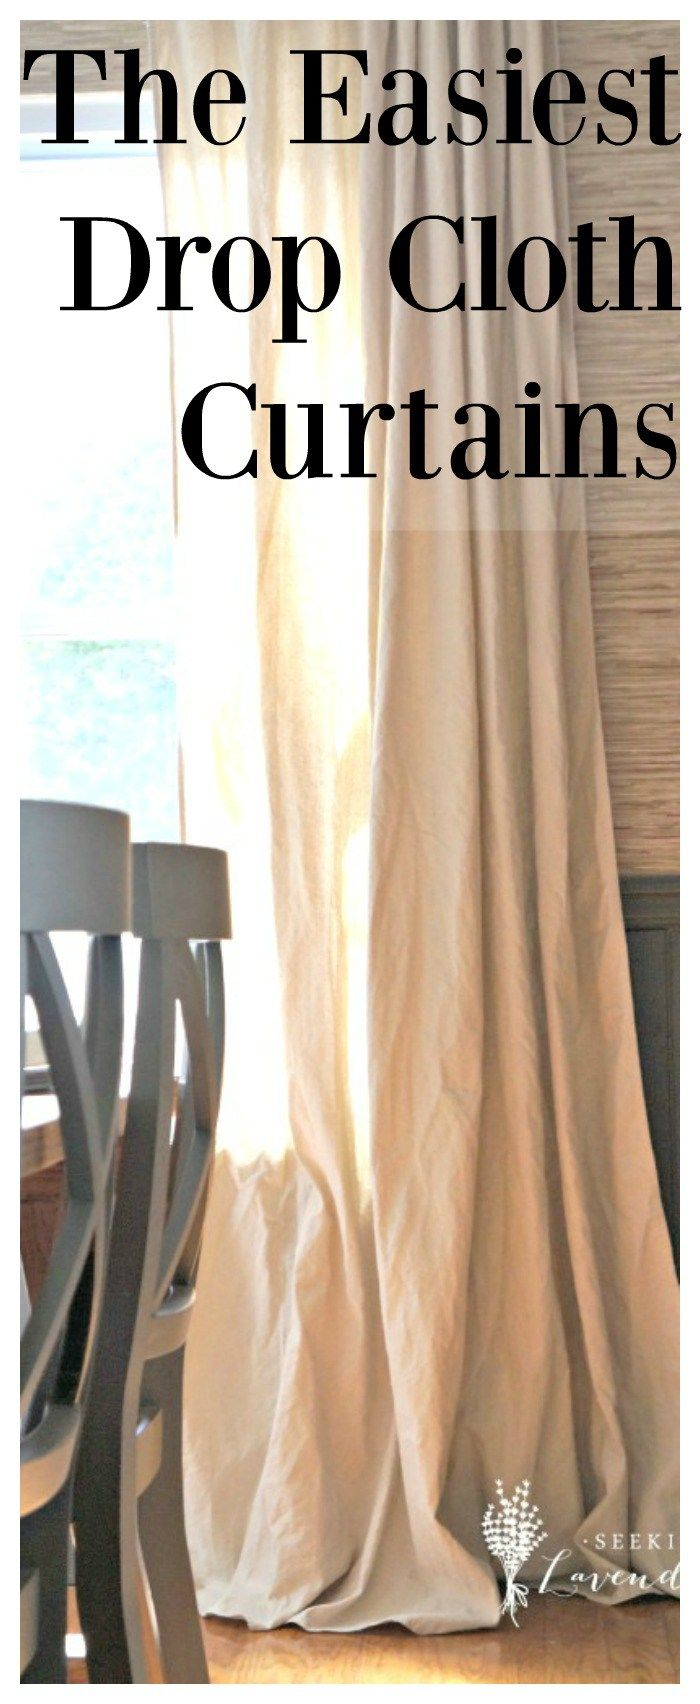 The Easiest Drop Cloth Curtains